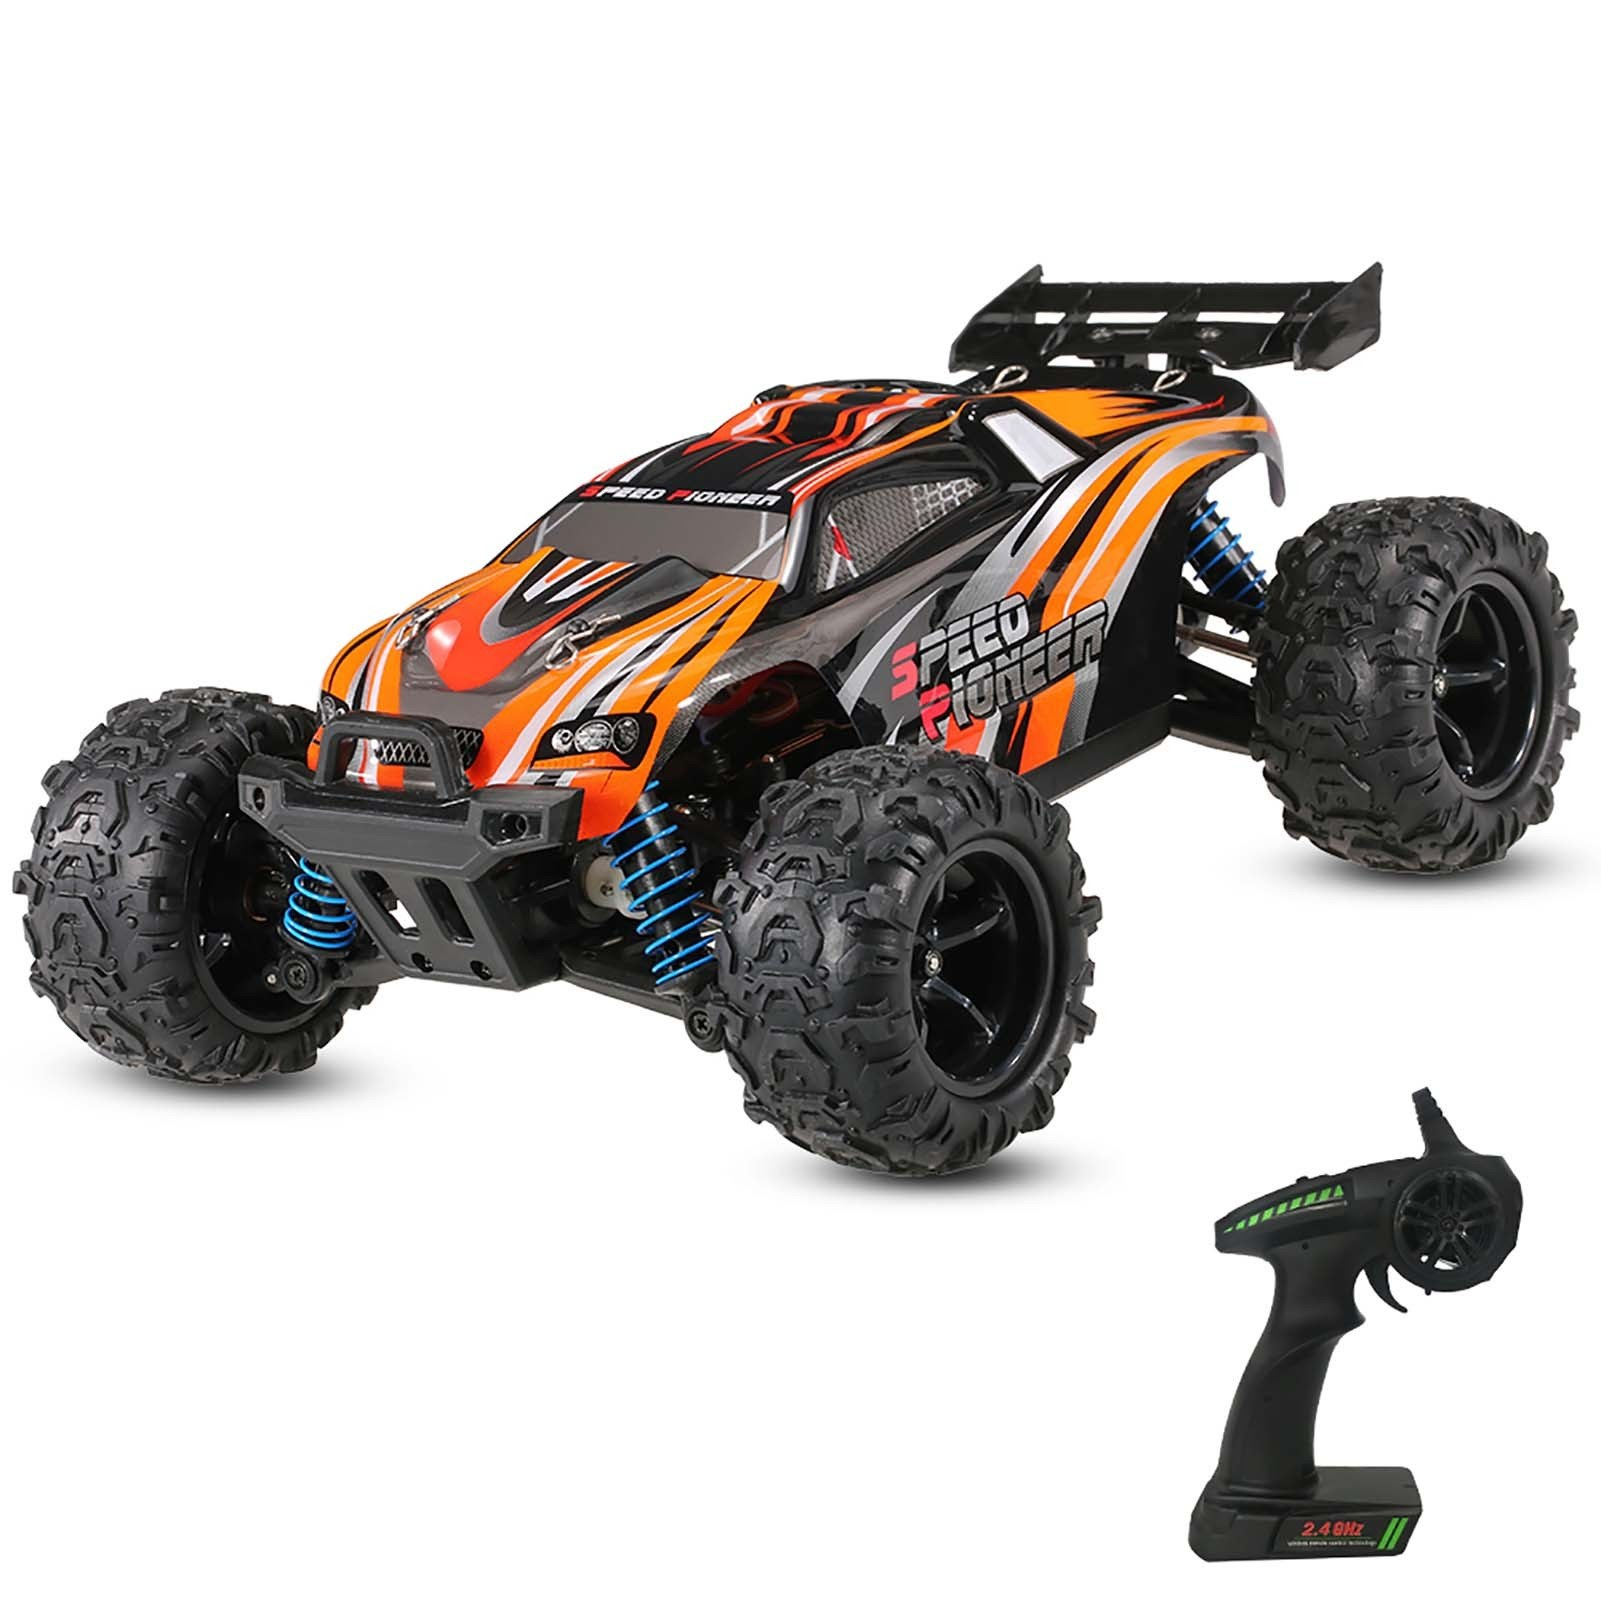 Tomtop - 58% OFF PXtoys NO.9302 RC Crawler 1/18 2.4GHz 4WD Off-Road Truggy, Free Shipping $69.99